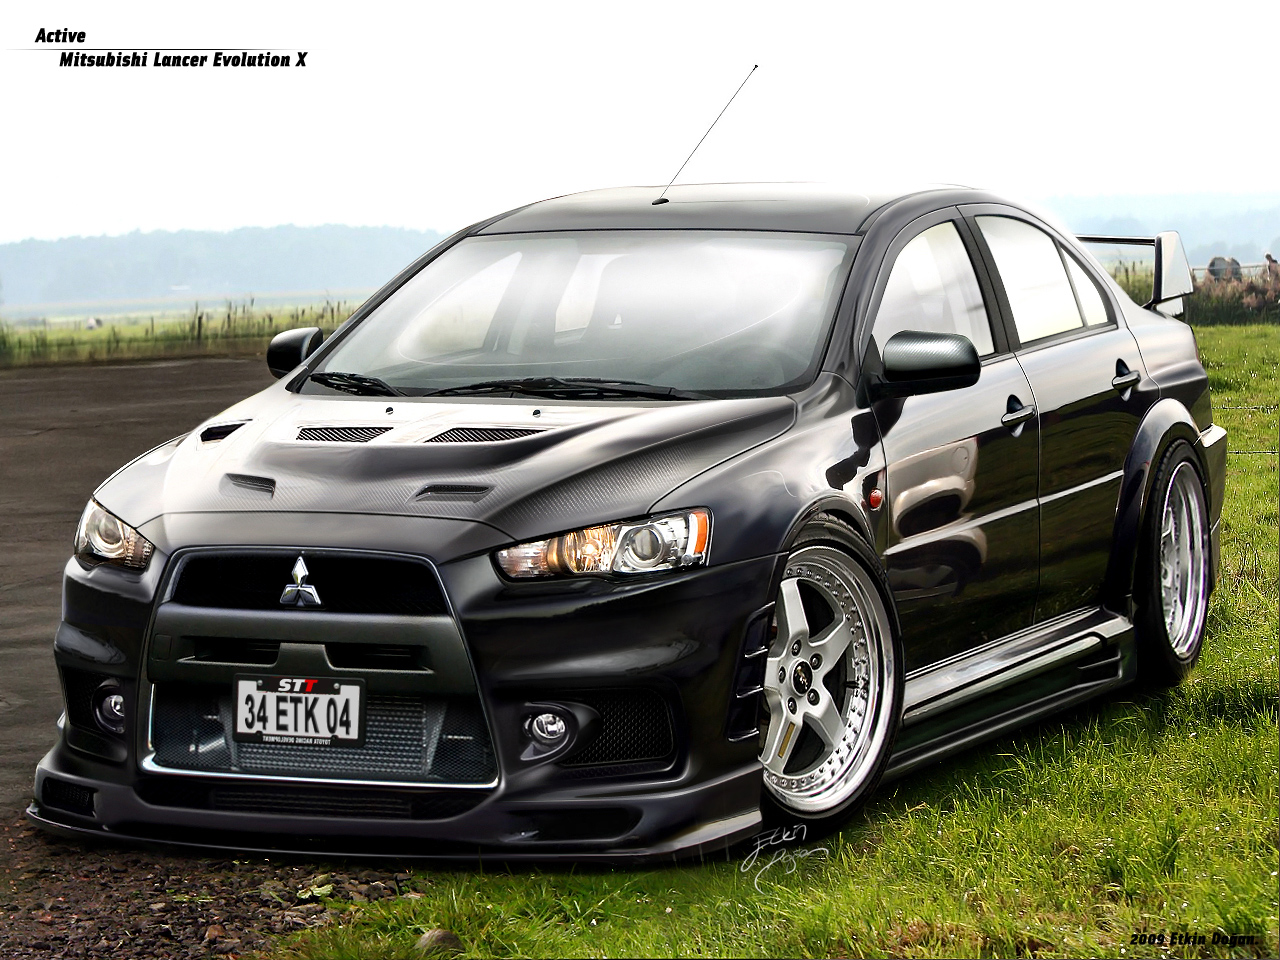 mitsubishi evo x wallpaper hd free download wallpaper dawallpaperz. Black Bedroom Furniture Sets. Home Design Ideas